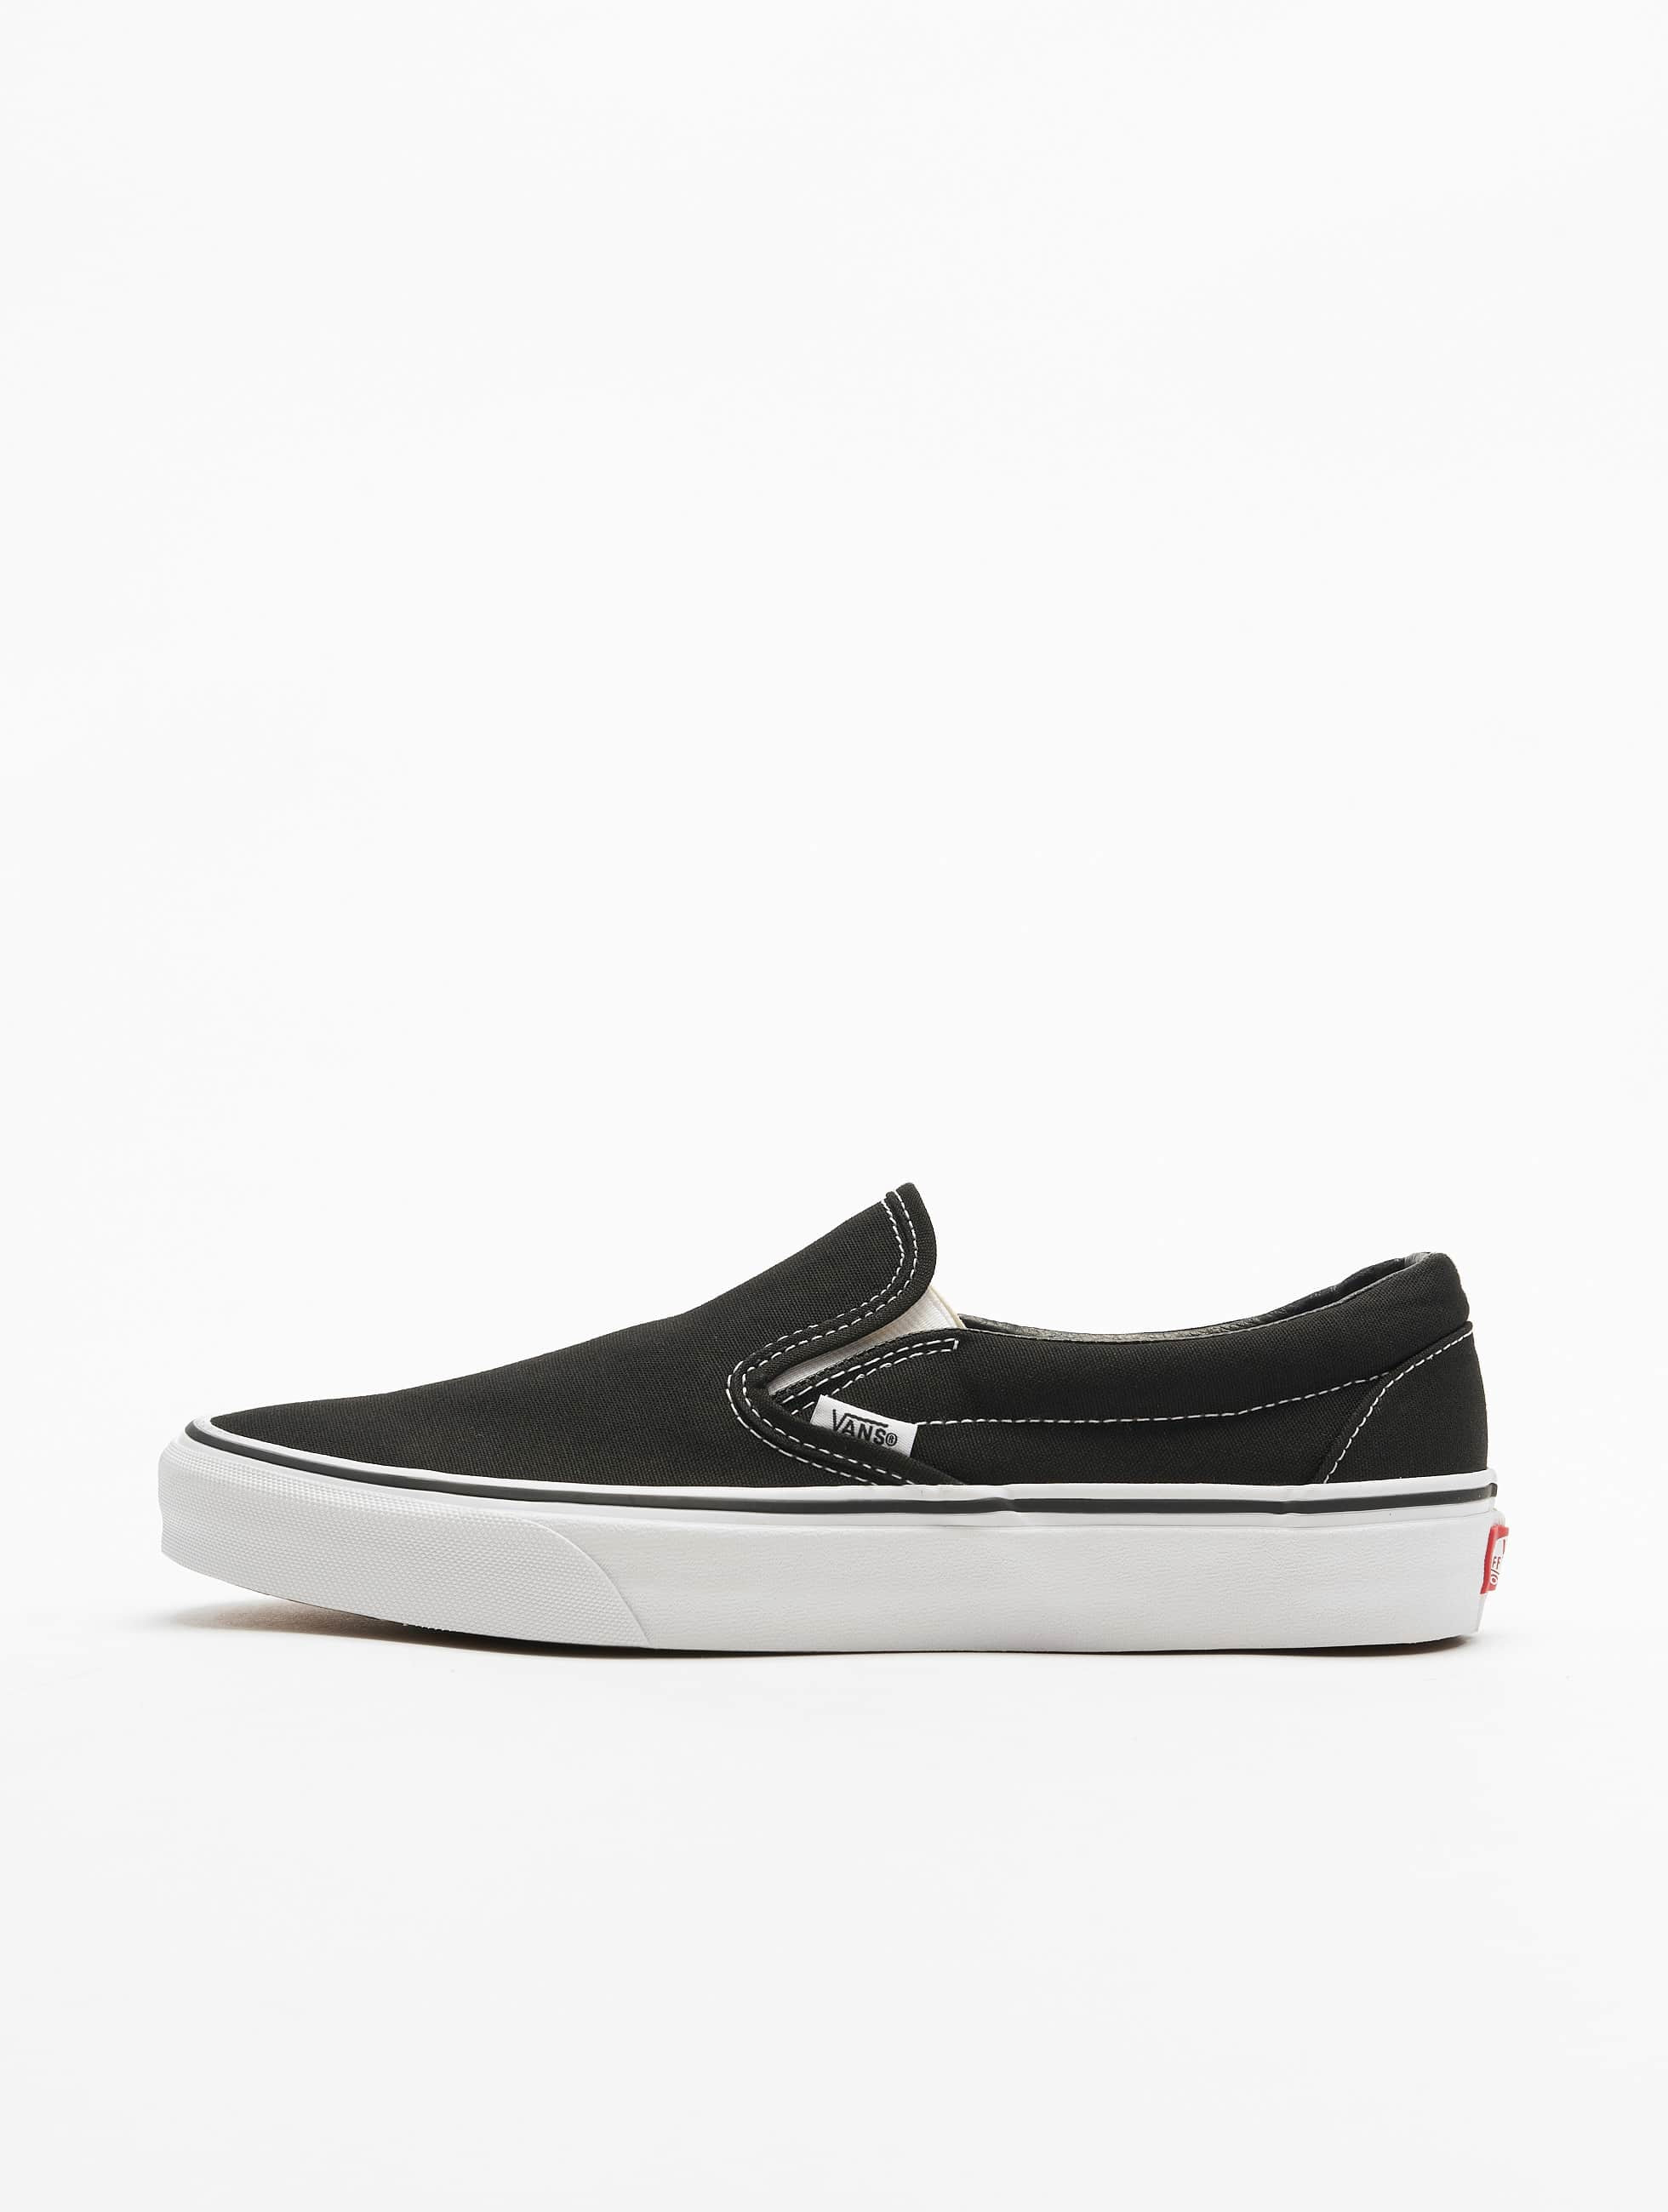 vans herren sneaker classic slip on in schwarz 19528. Black Bedroom Furniture Sets. Home Design Ideas